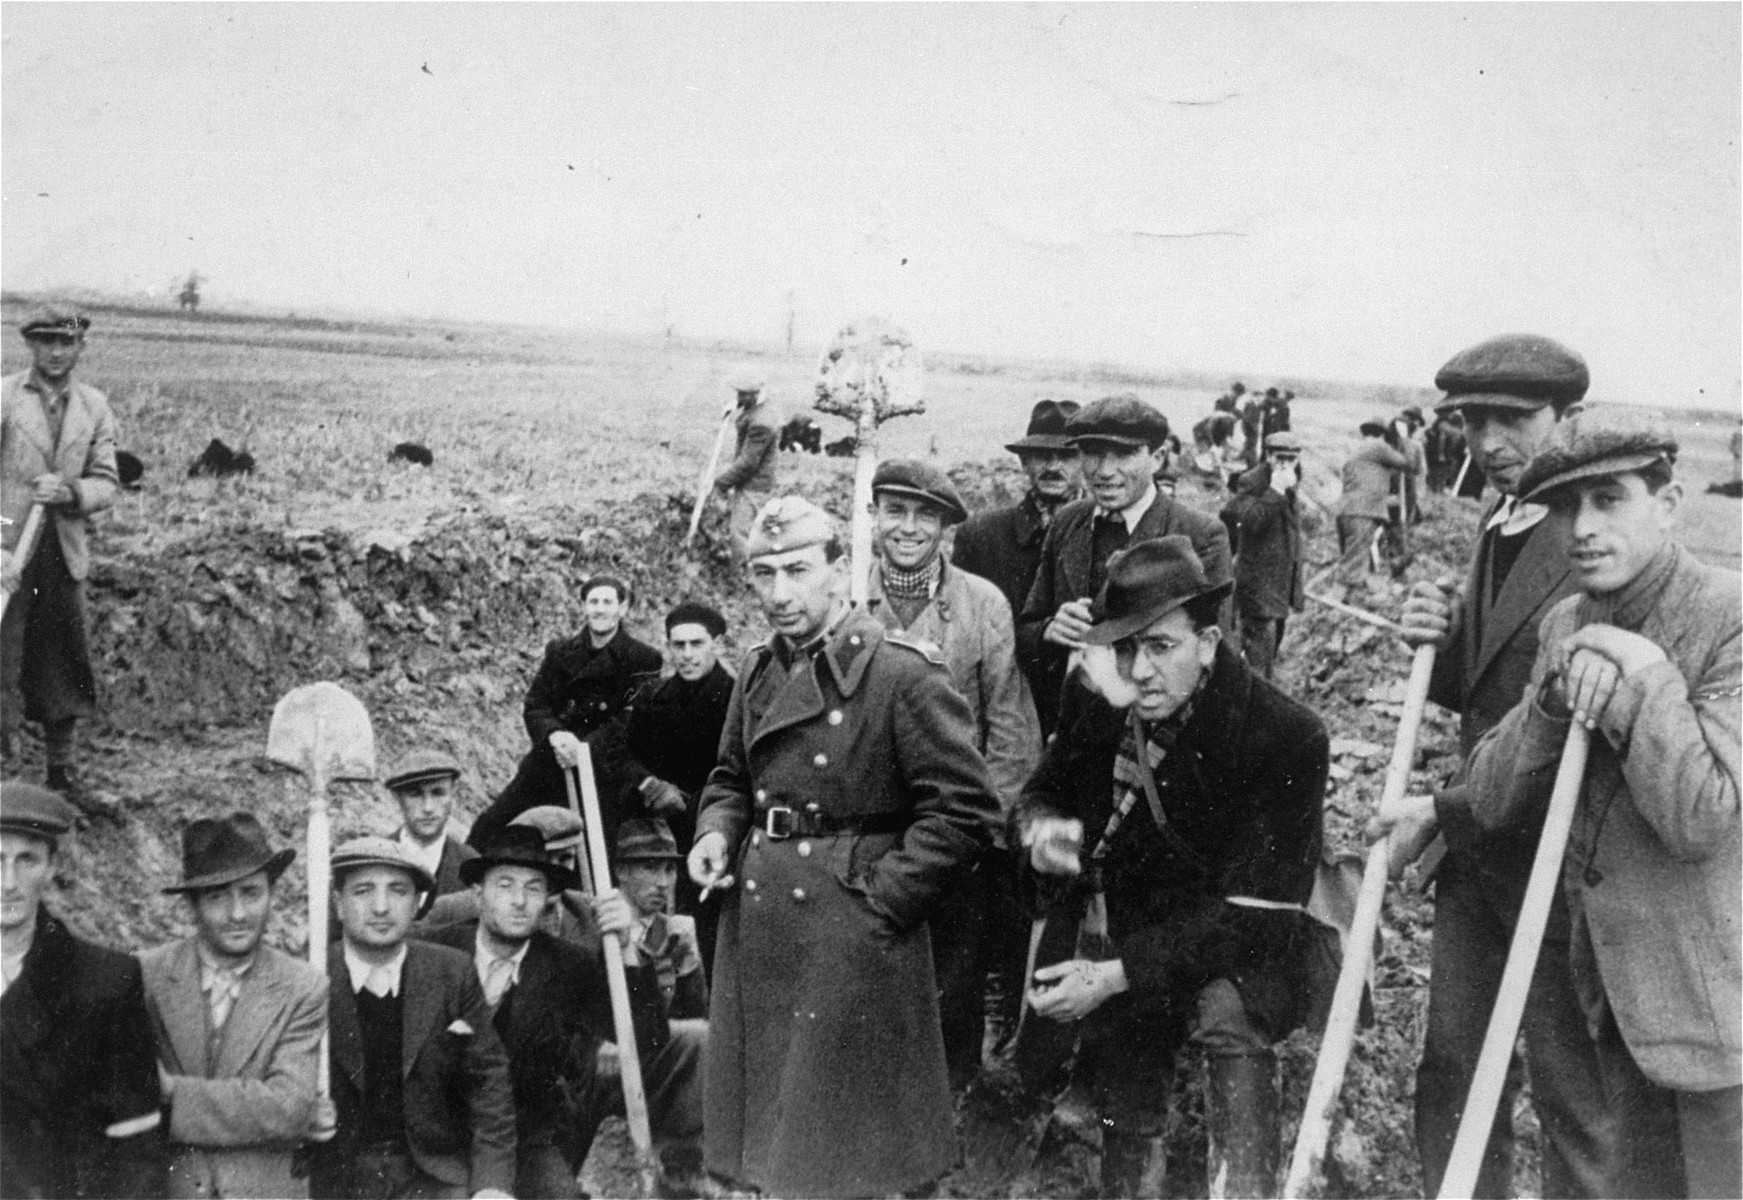 Jewish members of an Hungarian labor battalion pose with shovels at a work site.  Among those pictured is Salomon Belo from the town of Bene (third from the left).